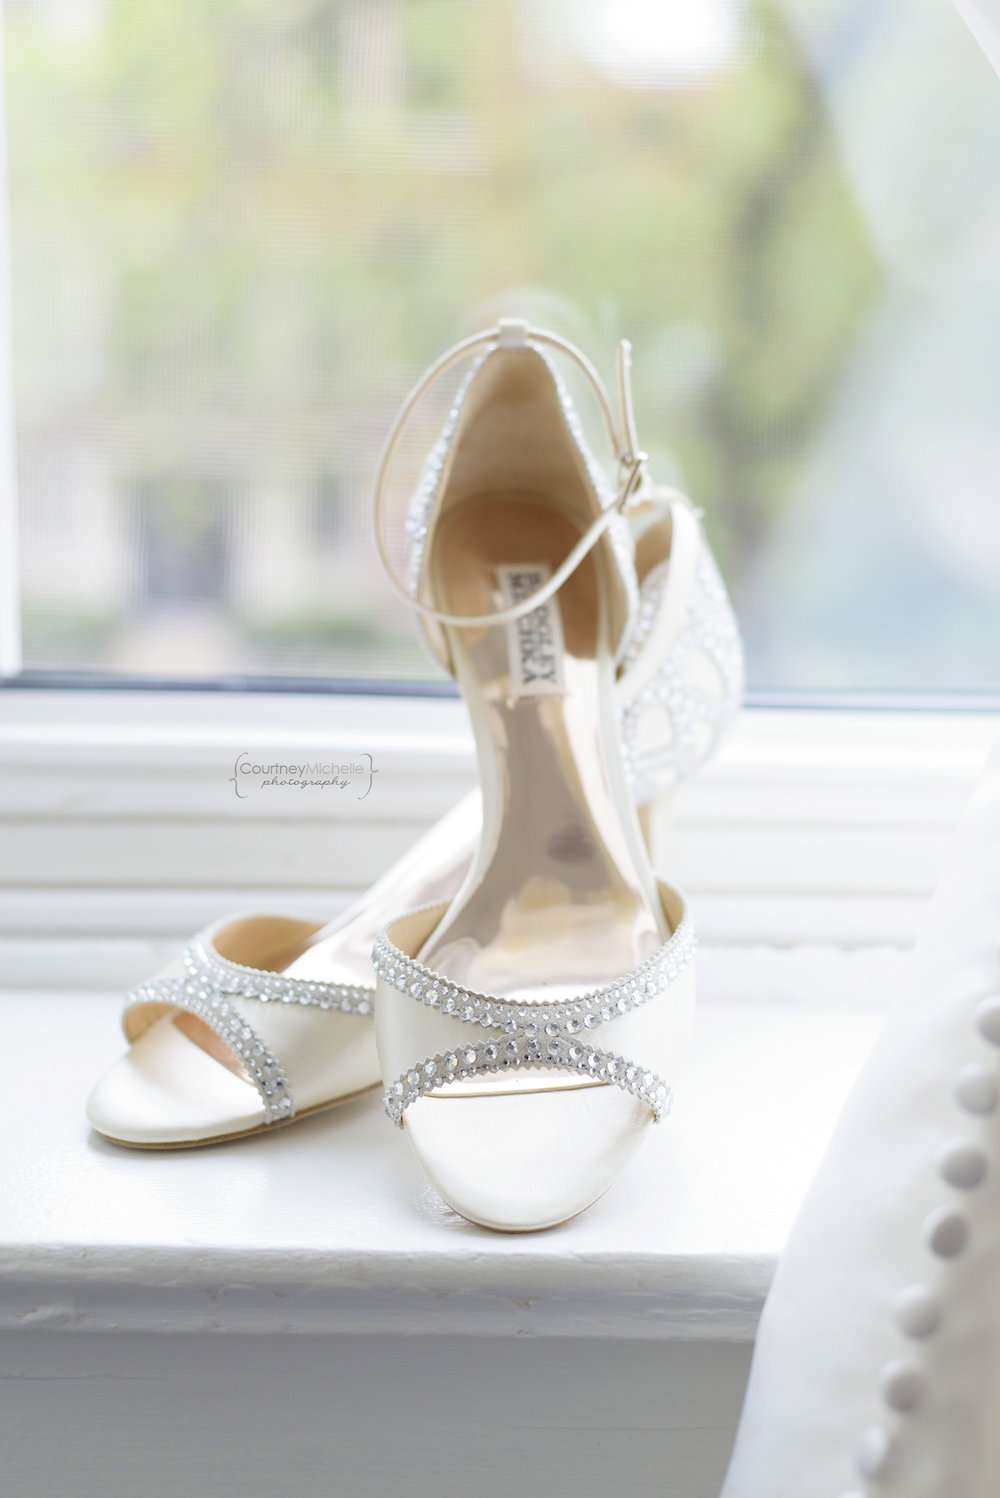 chicago-wedding-photographer-south-shore-cultural-center-bridal-shoes